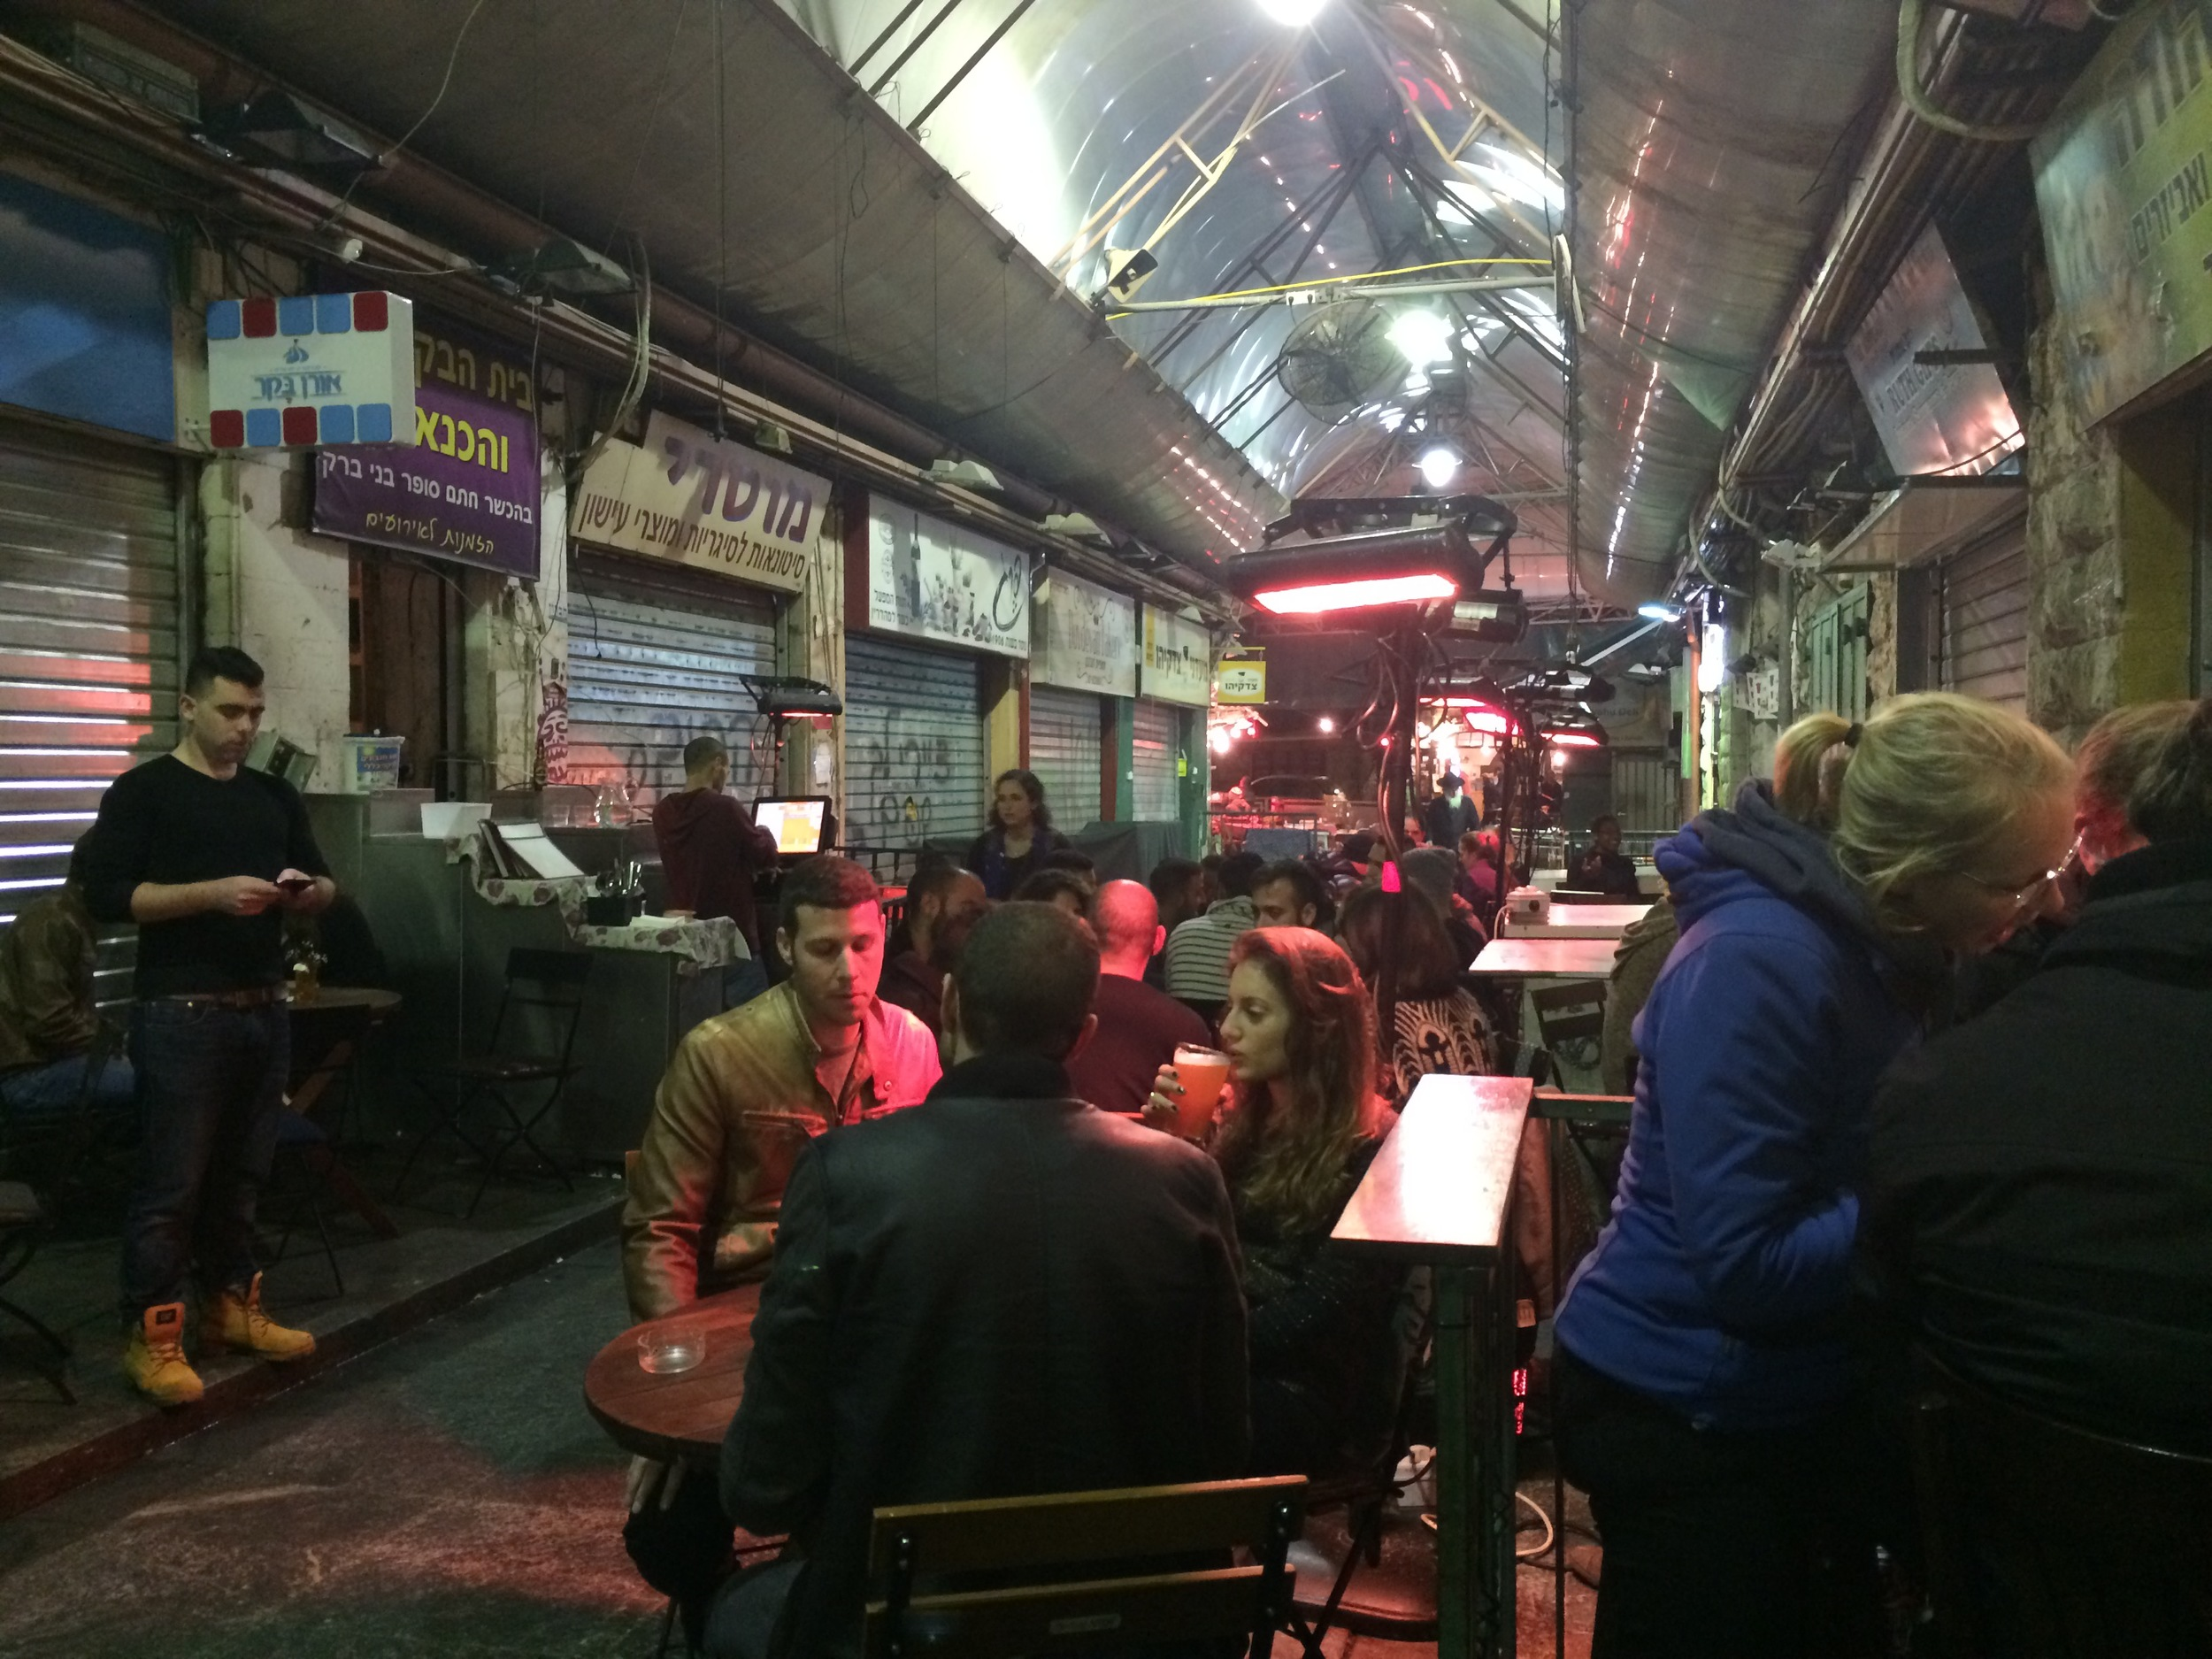 Mahane Yehuda Market at night.